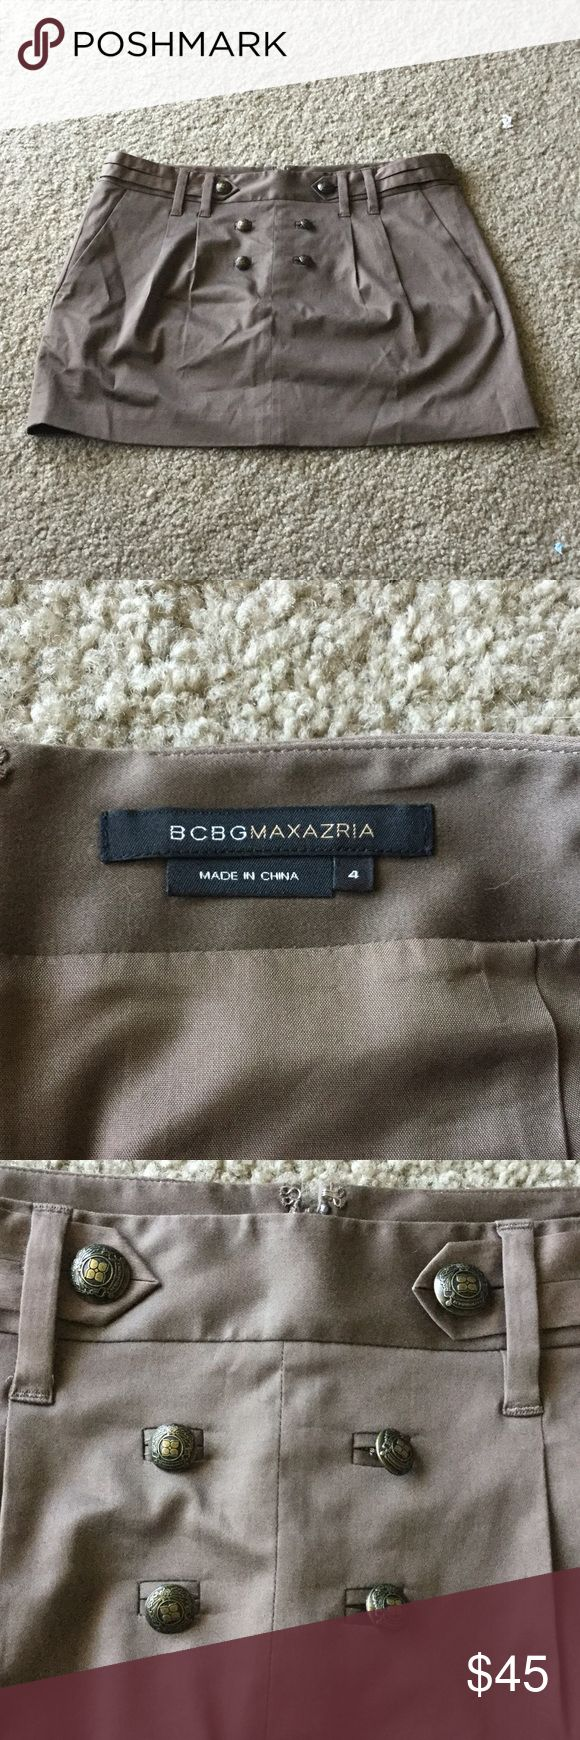 BCBGMAXAZRIA brown pencil mini skirt Cute skirt with button decoration on the front and real pockets on the back. Zipper closure and adjustable 'belt'. Some minor pulled threads, slight wrinkles but no their damage. Double layered, dry clean only. Color best shown in second and last photo BCBGMaxAzria Skirts